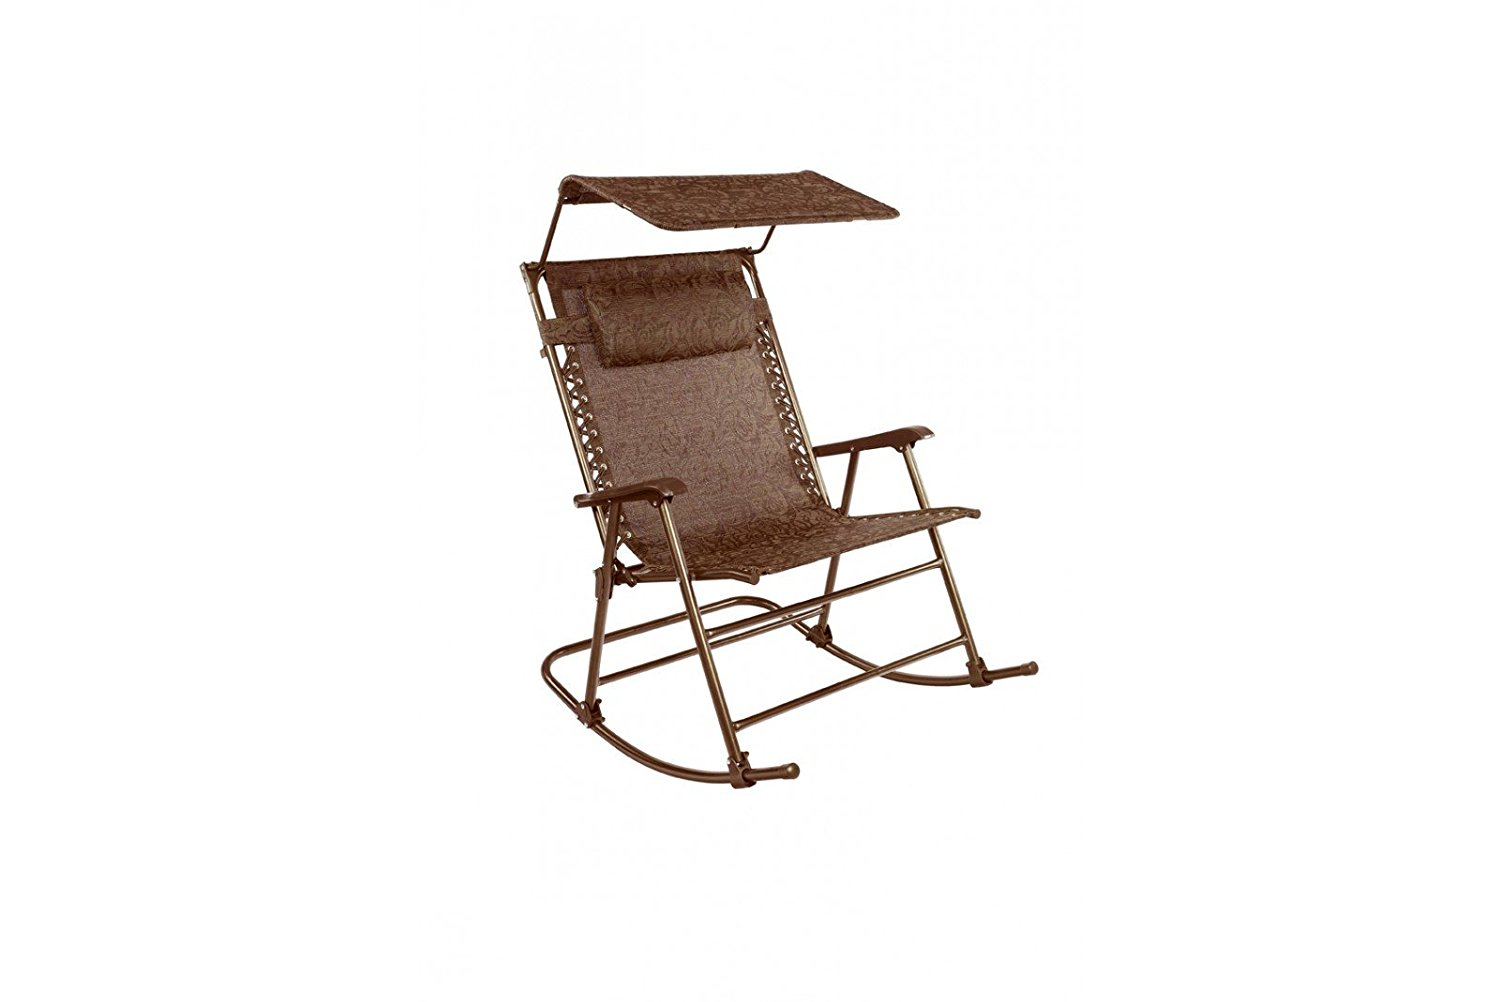 New Bliss Hammocks Gfr 091jr Rocking Chair With Canopy In